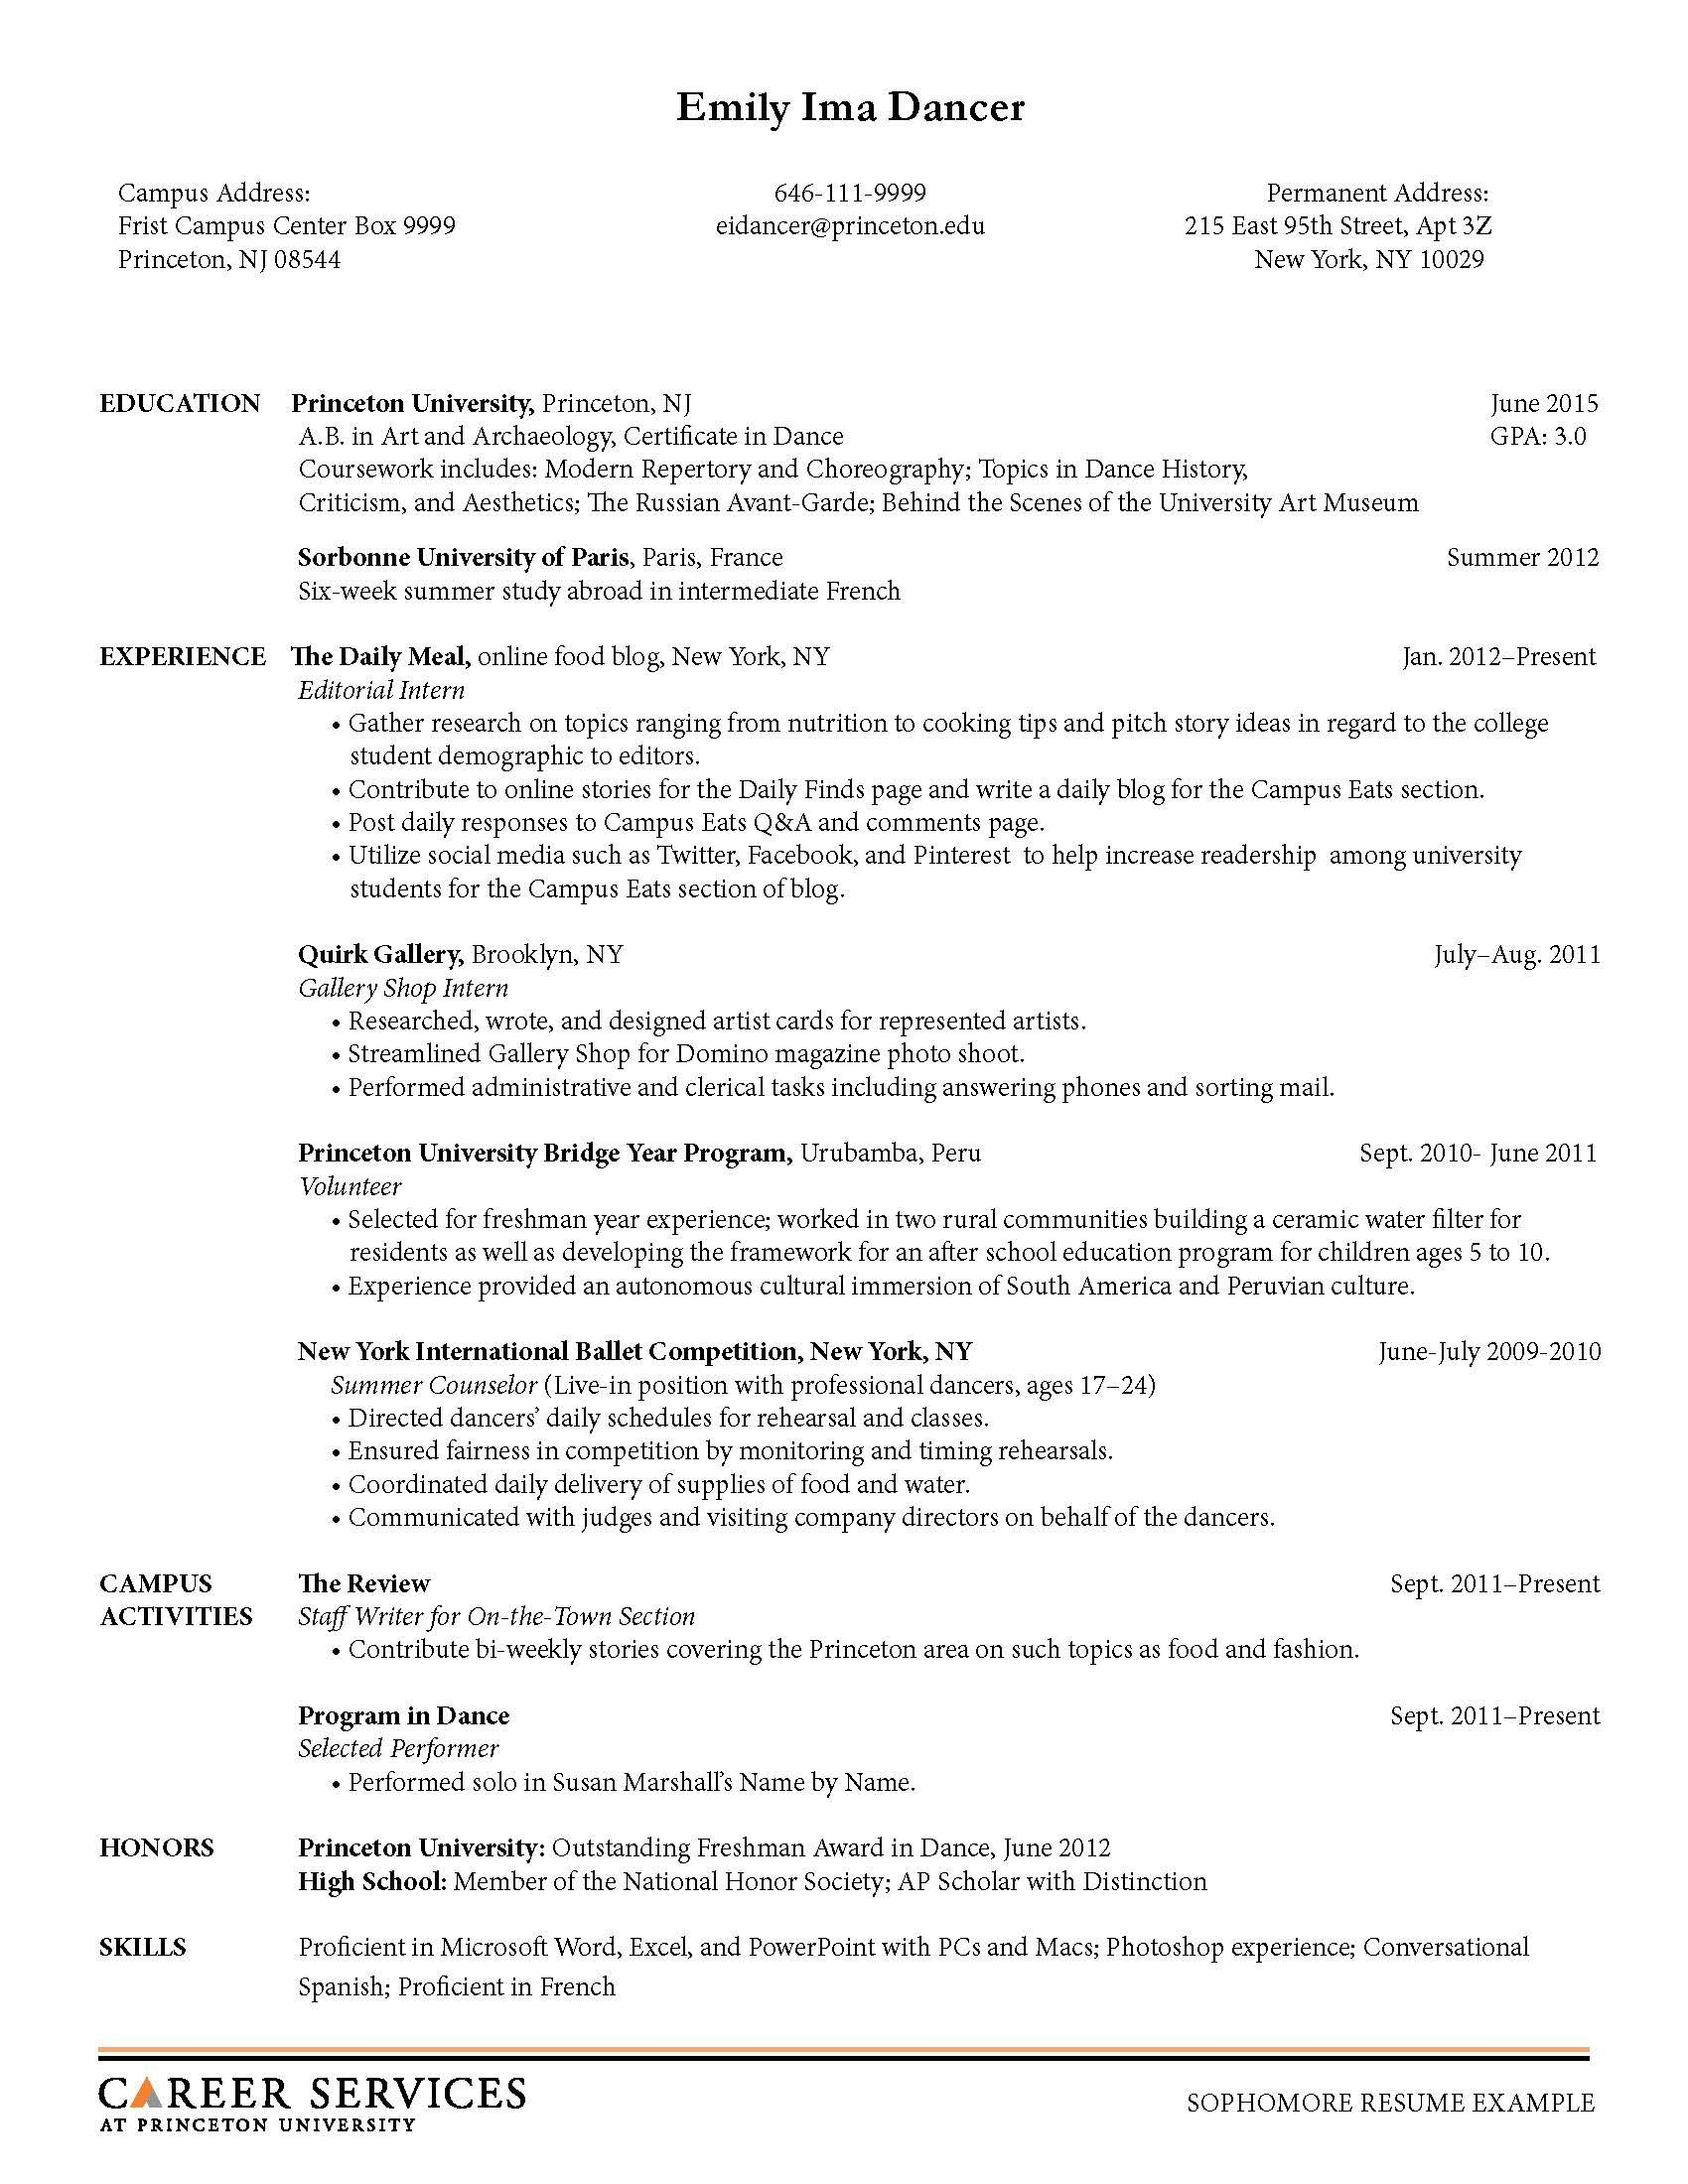 Picnictoimpeachus  Inspiring Sample Resume Resume And Career On Pinterest With Likable Waitress Resume Besides Microsoft Office Resume Templates Furthermore Resume Format  With Agreeable Difference Between Cv And Resume Also Google Resume Templates In Addition Engineering Resume And Google Resume As Well As Creative Resume Templates Additionally How To Spell Resume From Pinterestcom With Picnictoimpeachus  Likable Sample Resume Resume And Career On Pinterest With Agreeable Waitress Resume Besides Microsoft Office Resume Templates Furthermore Resume Format  And Inspiring Difference Between Cv And Resume Also Google Resume Templates In Addition Engineering Resume From Pinterestcom